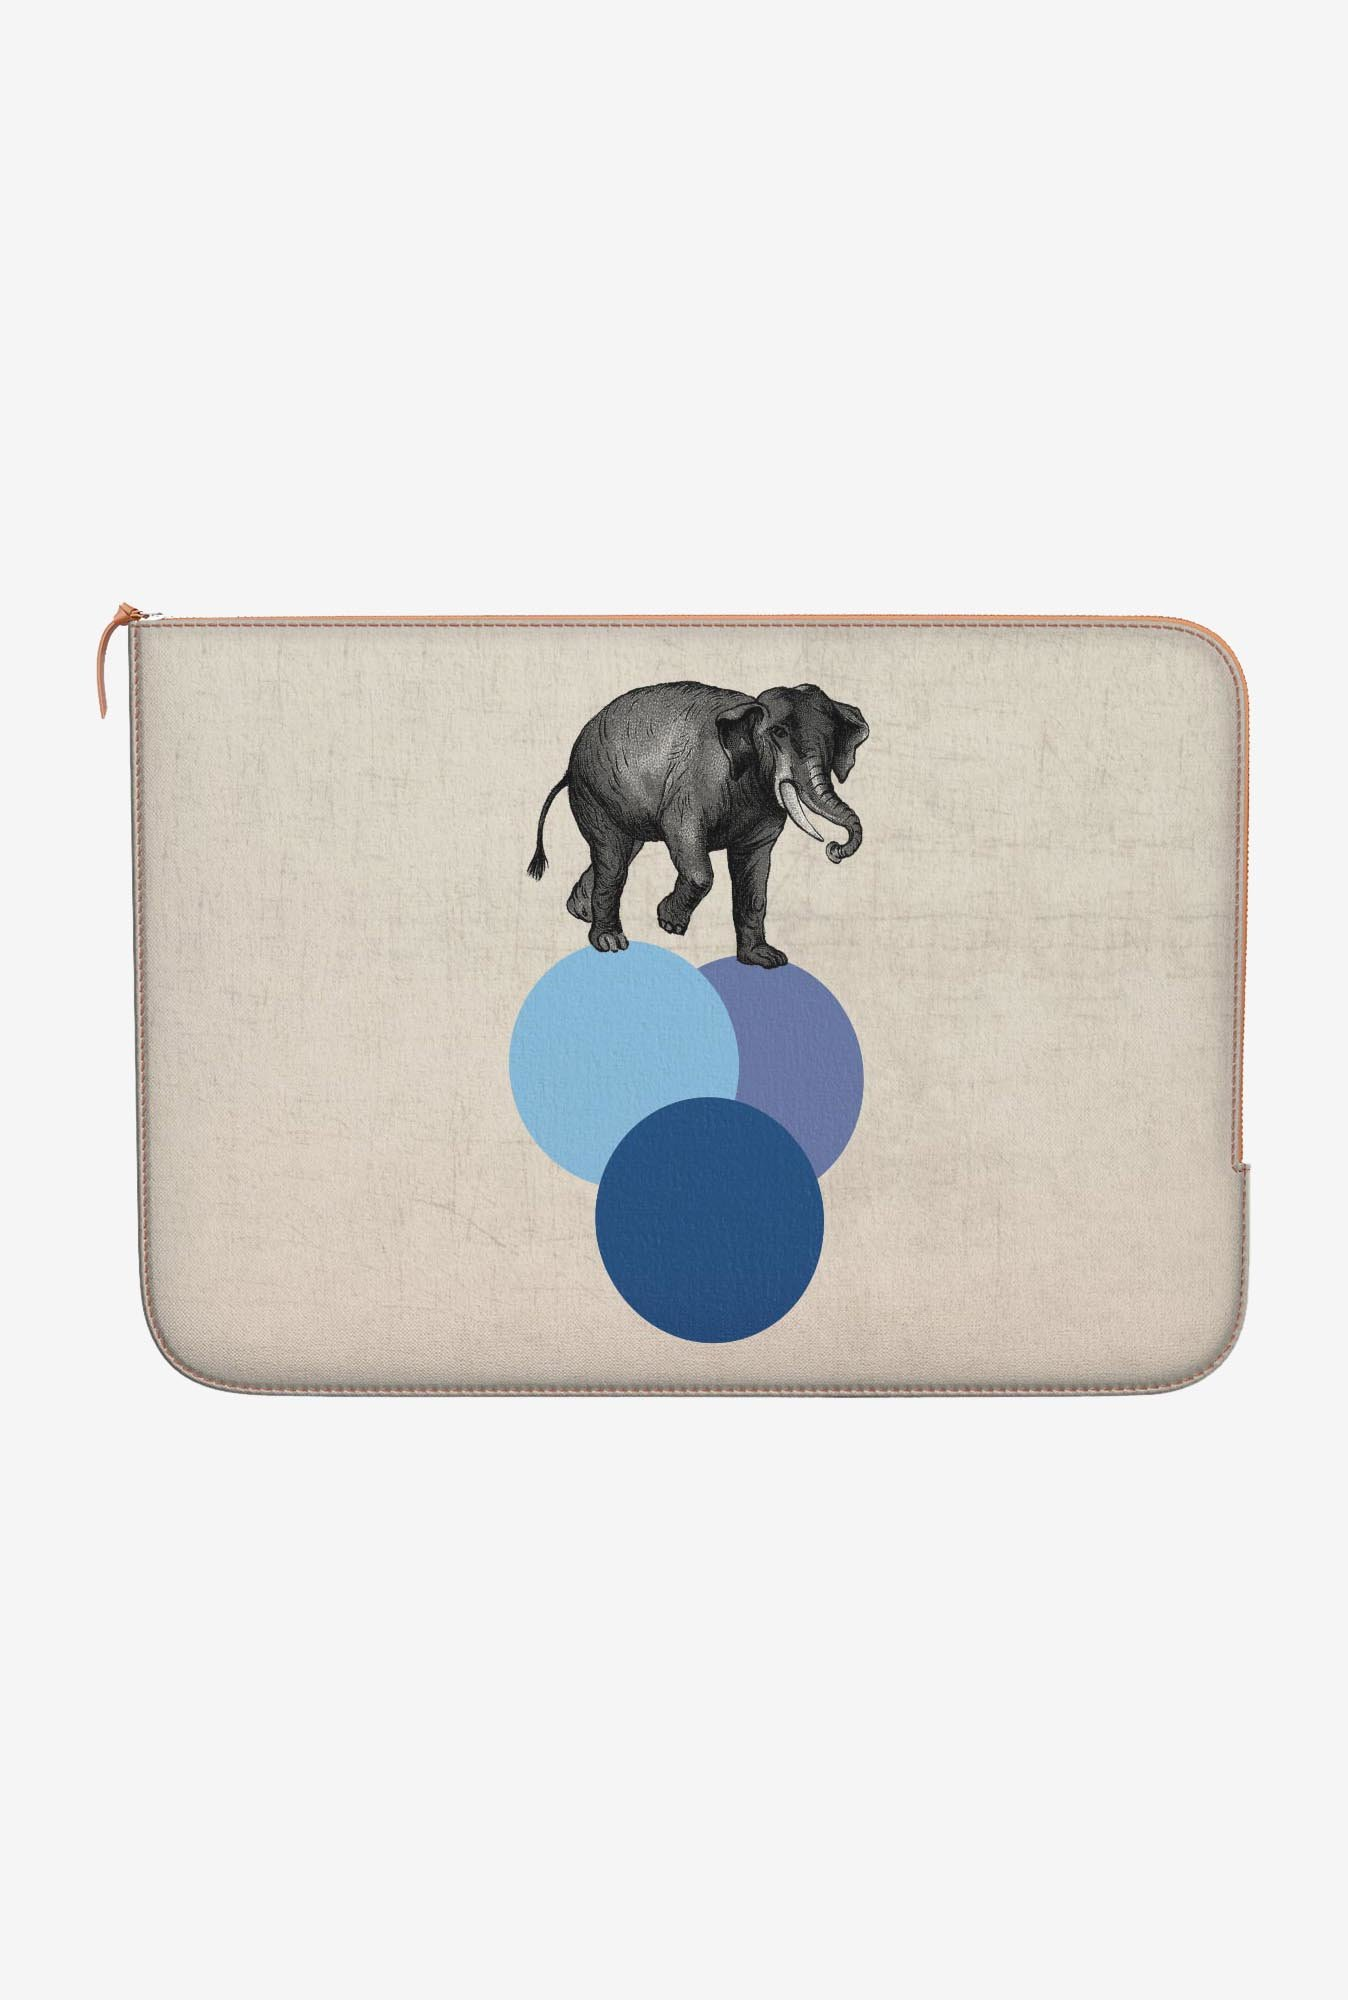 DailyObjects Elephant MacBook 12 Zippered Sleeve